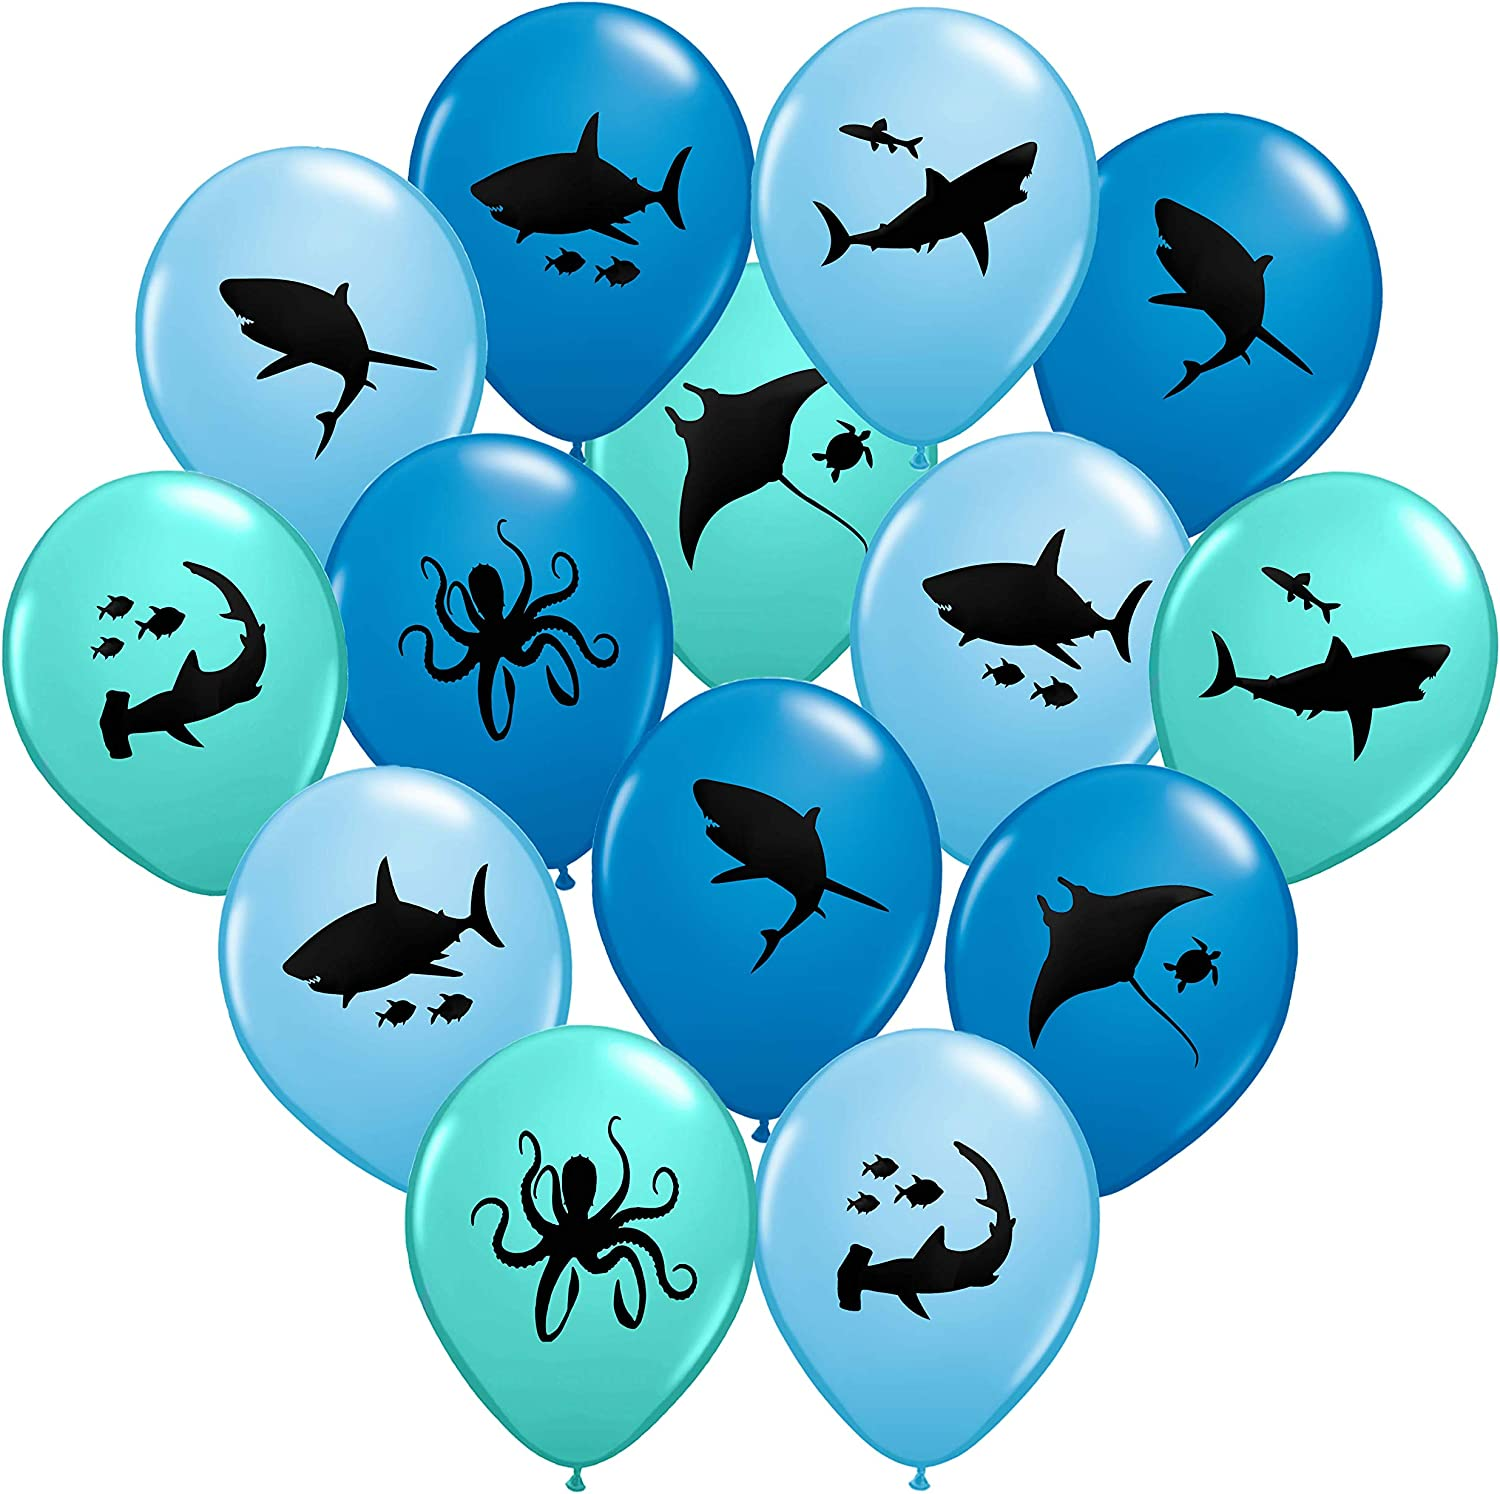 "Gypsy Jade's Shark Balloons - Great For Shark Themed Birthday Parties, Shark Week Parties or Under-The-Sea gatherings - Package of 36 - Big 12"" Latex Balloons!"